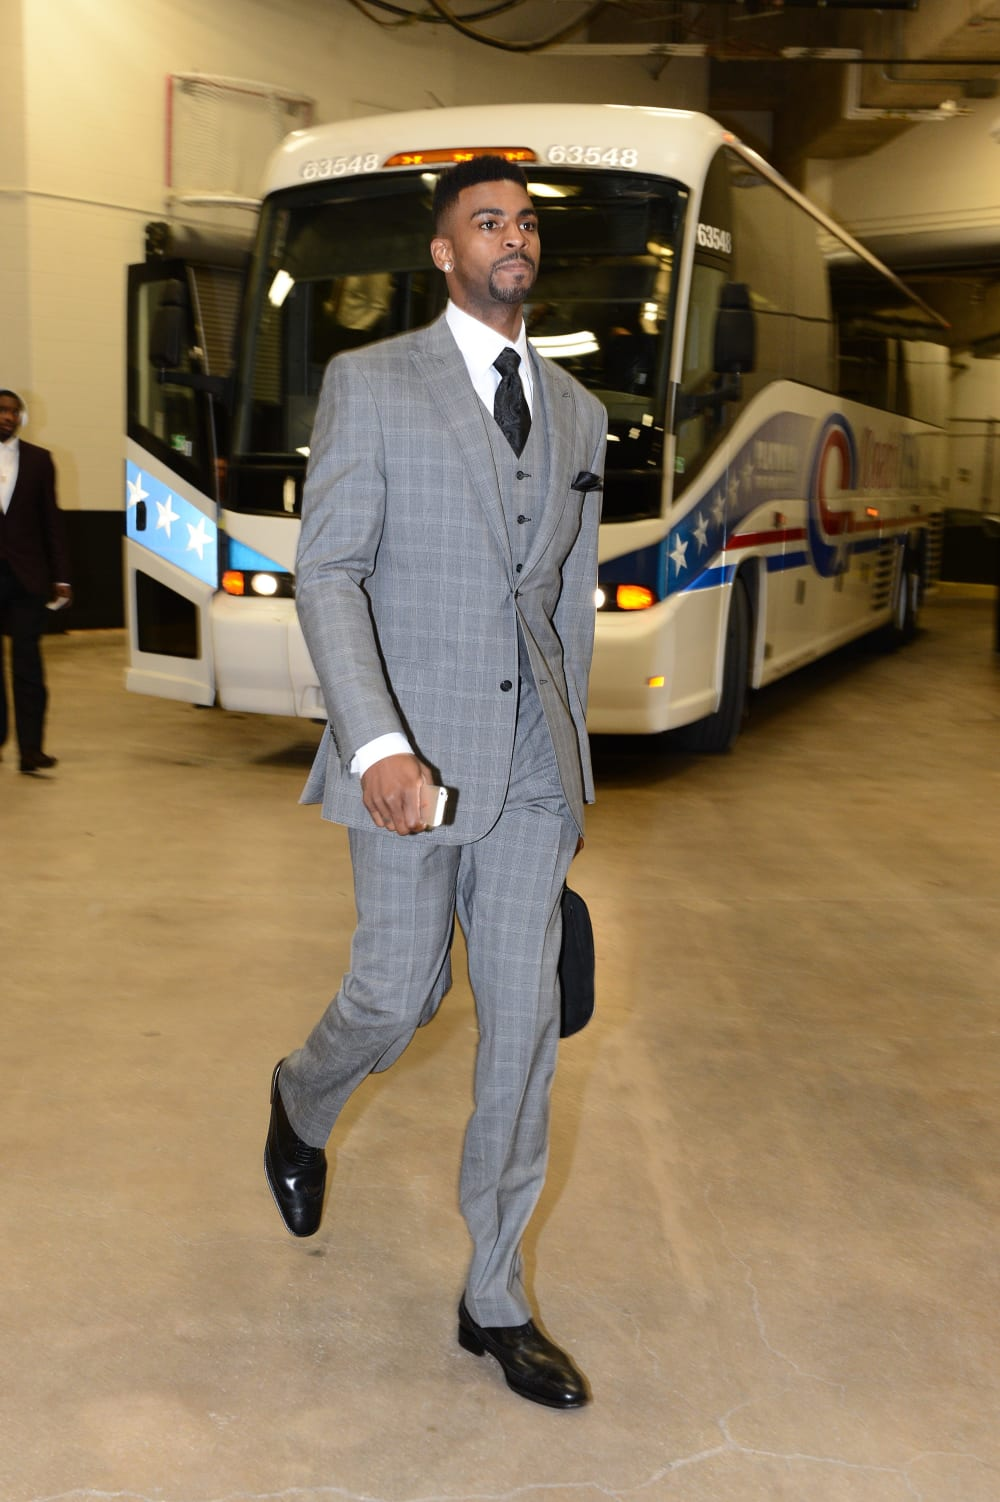 SAN ANTONIO, TX - MAY 8: Dorell Wright #1 of the Portland Trail Blazers arrives at the arena before a game against the San Antonio Spurs in Game Two of the Western Conference Semifinals during the 2014 NBA Playoffs on May 8, 2014 at the AT&T Center in San Antonio, Texas. NOTE TO USER: User expressly acknowledges and agrees that, by downloading and/or using this Photograph, user is consenting to the terms and conditions of the Getty Images License Agreement. Mandatory Copyright Notice: Copyright 2013 NBAE (Photo by Garrett W. Ellwood/NBAE via Getty Images)